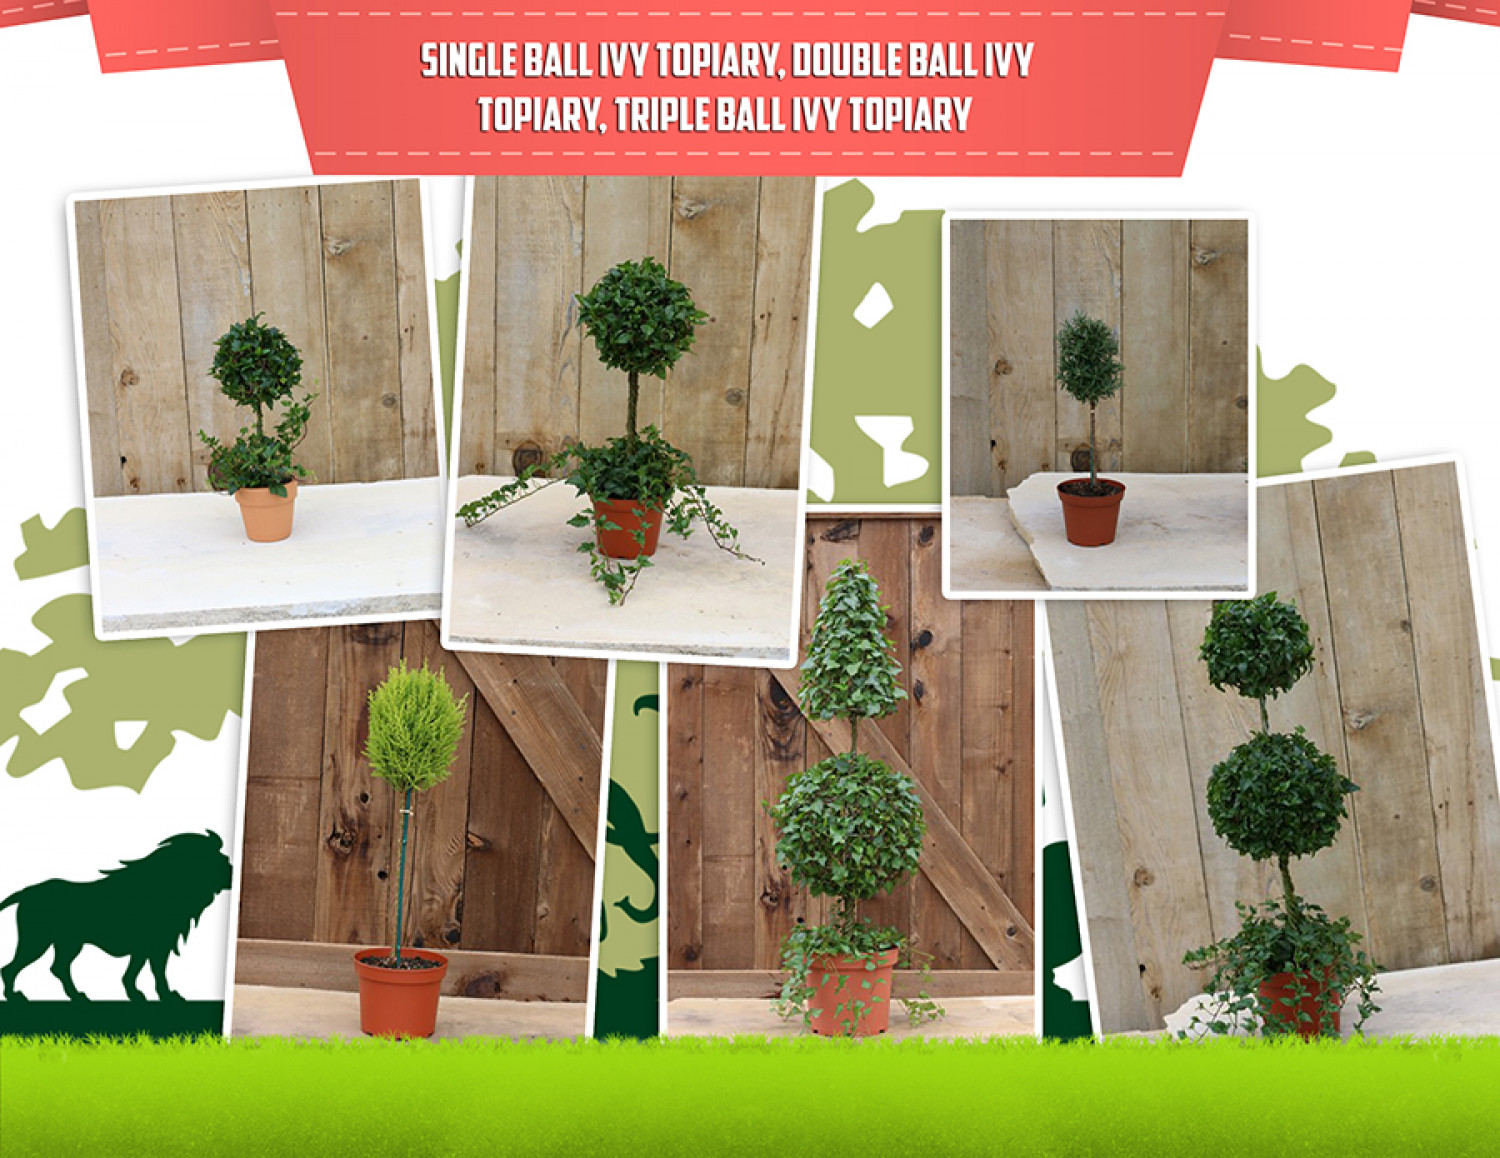 Live Ball Topiary Plants Infographic